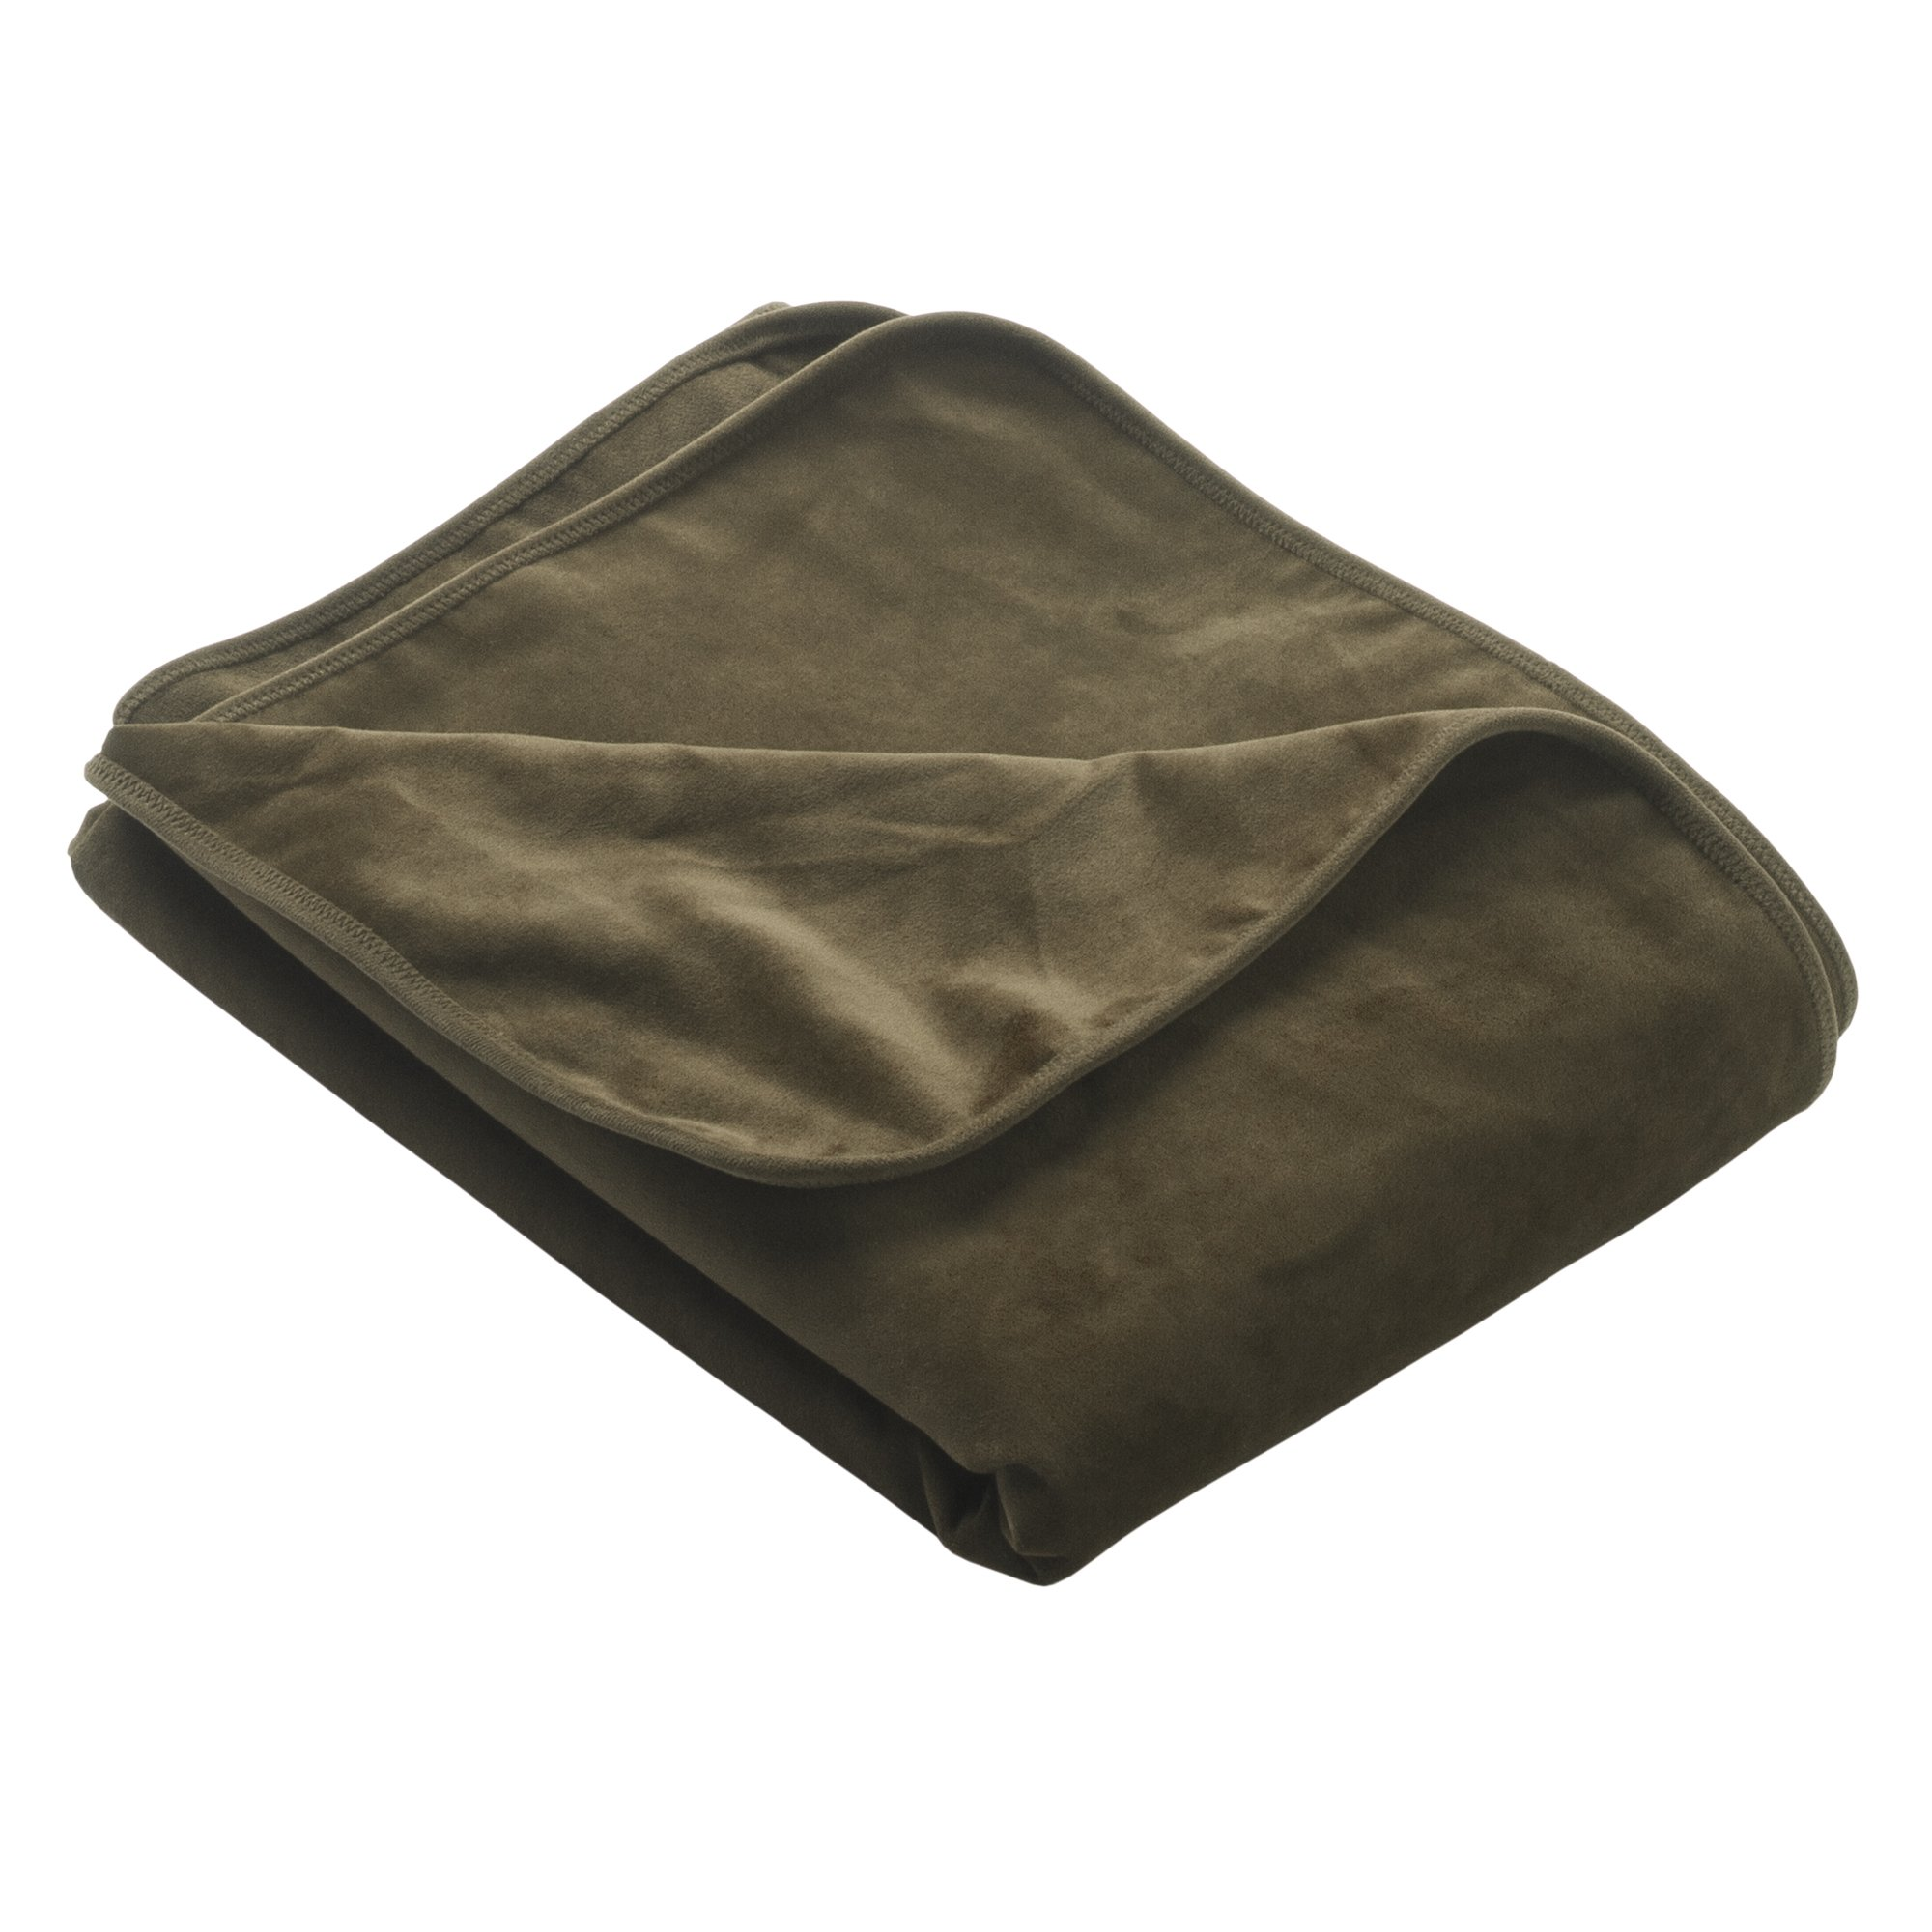 Liberator Fascinator Throe Moisture-Resistant Sex Blanket, King Size, Espresso by Liberator